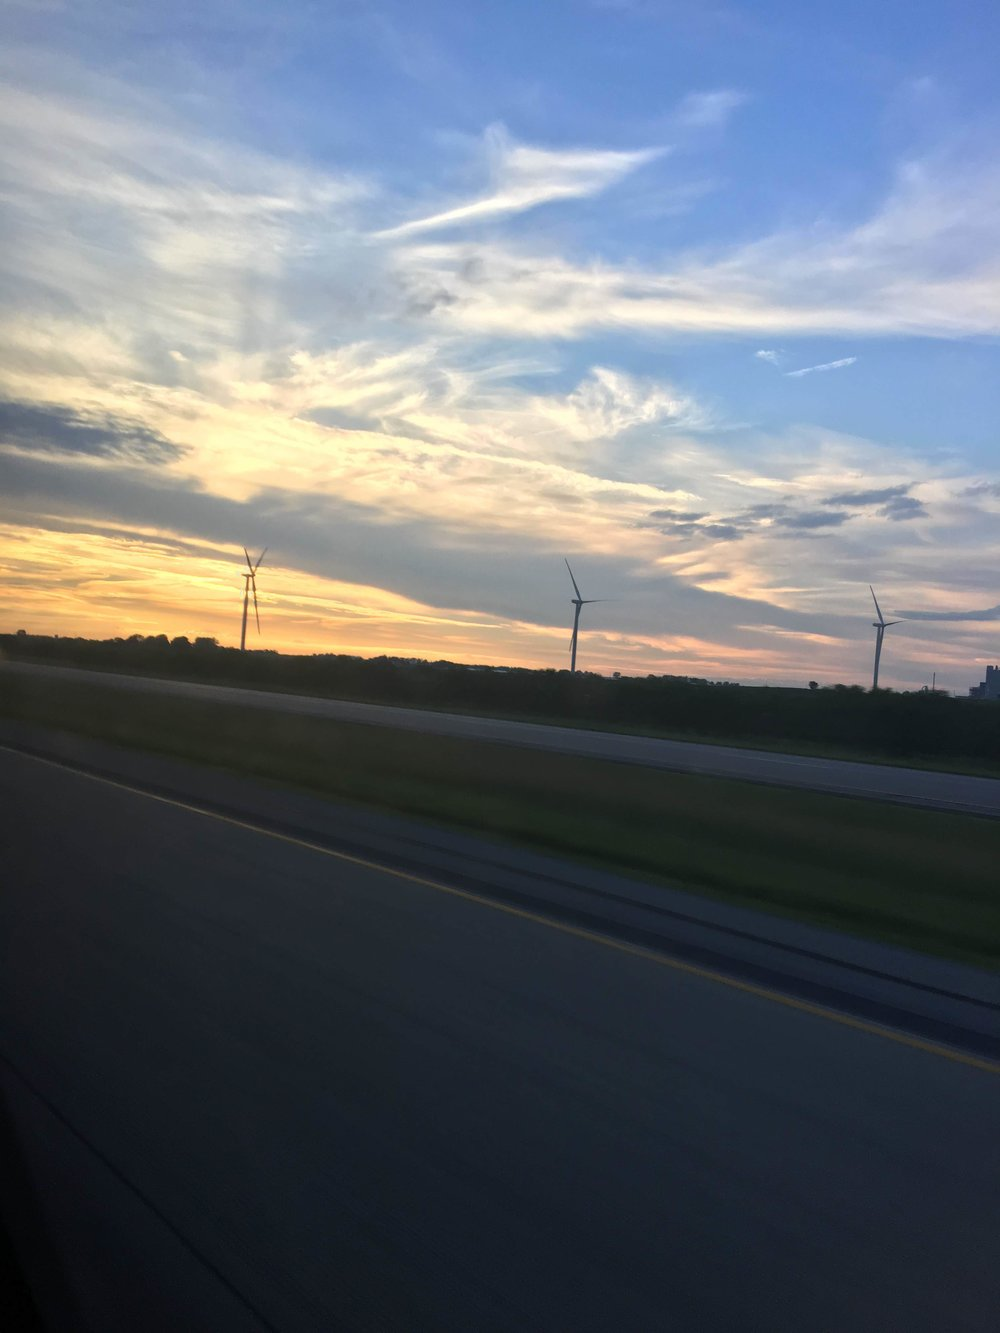 iowa-sunset-windmills.jpg